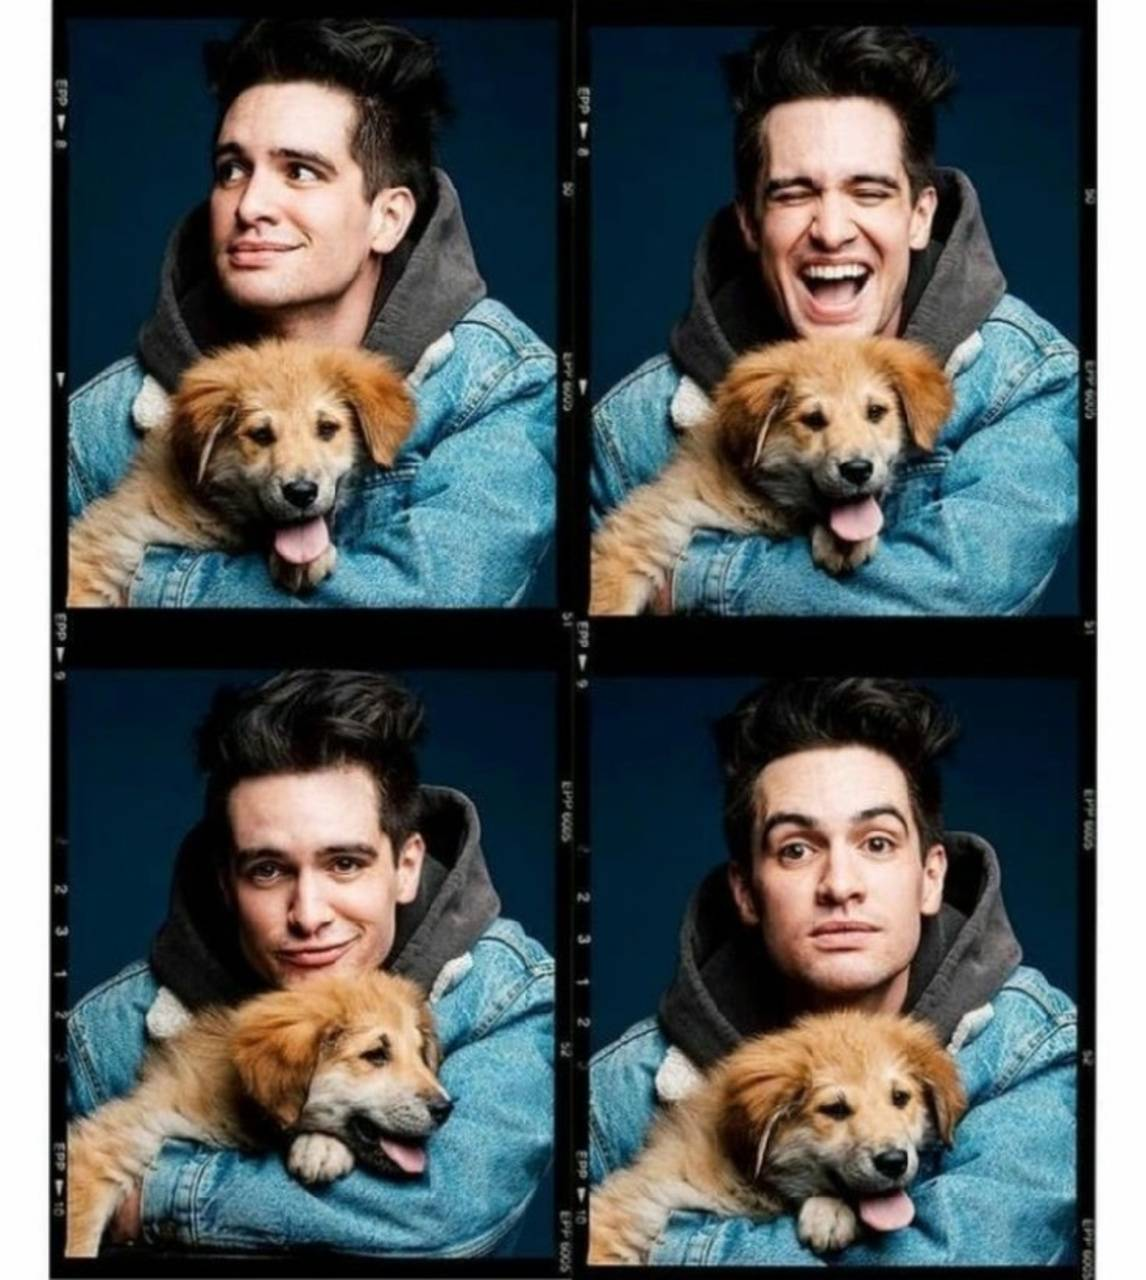 Beebo and a pupper